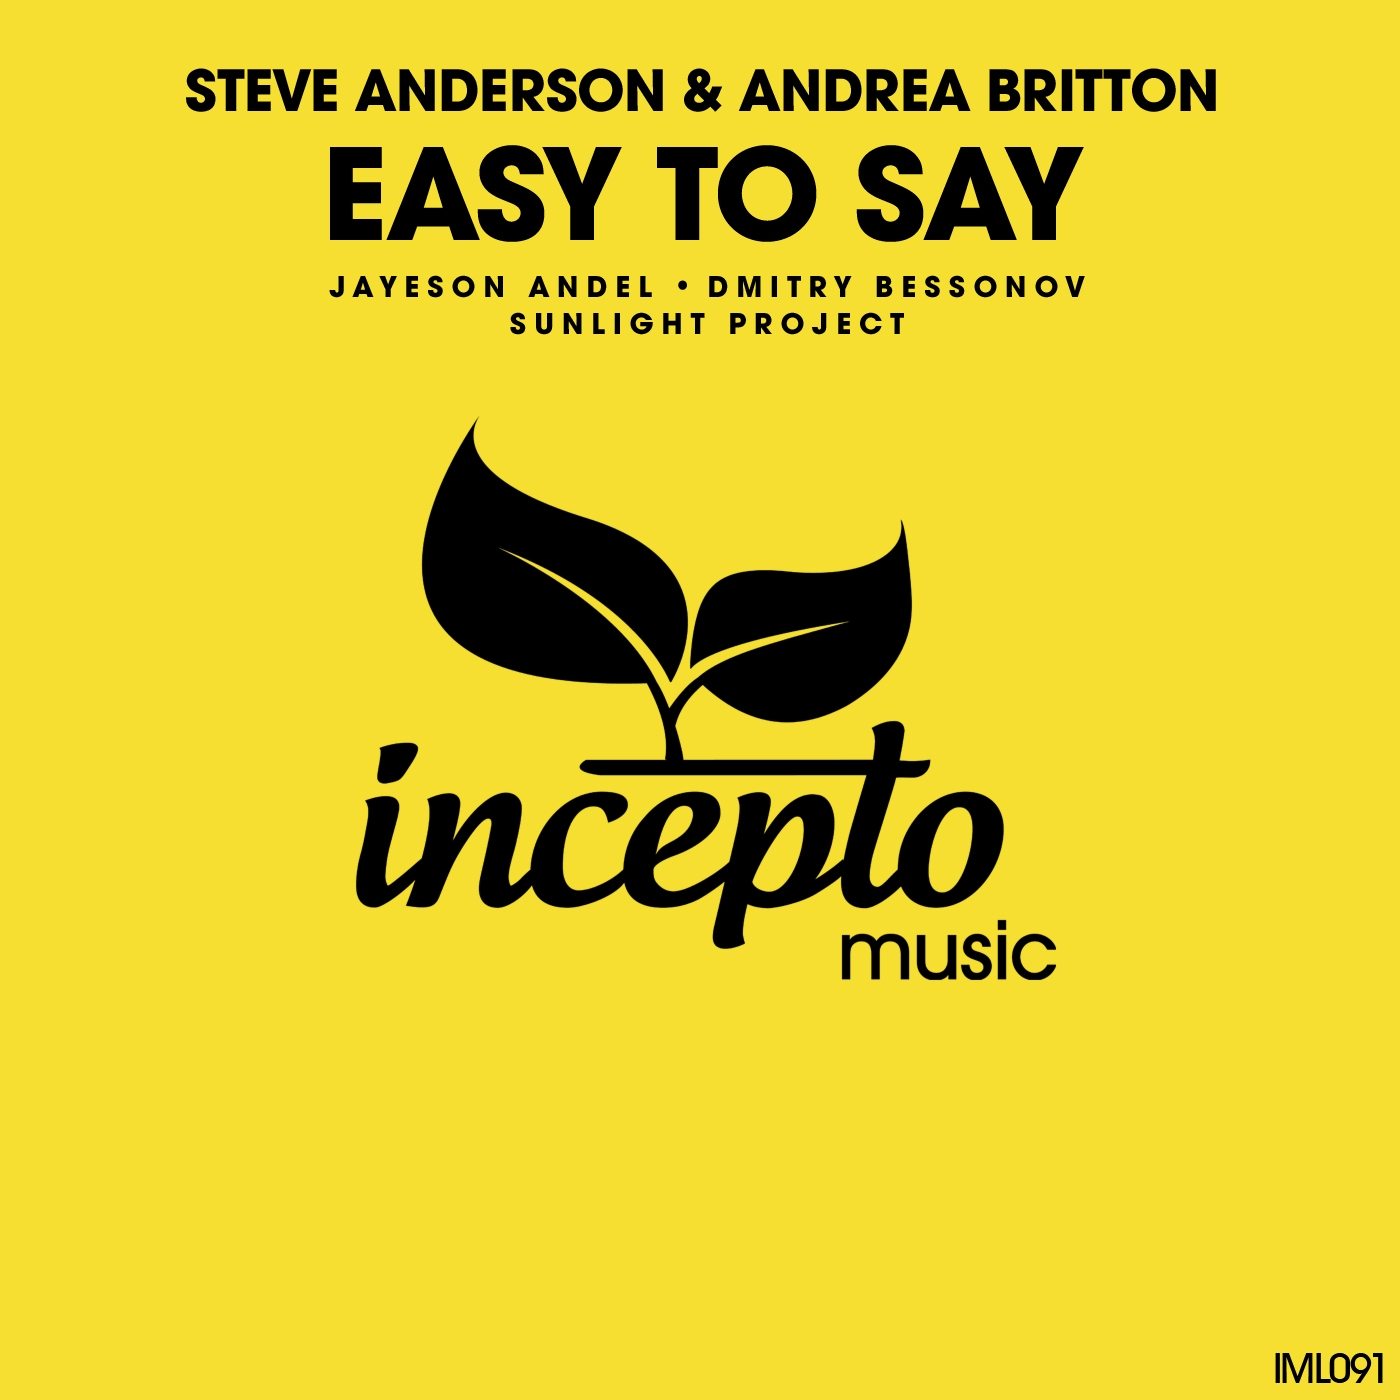 Steve Anderson & Andrea Britton - Easy to Say (From A/ To /B Album Mix)